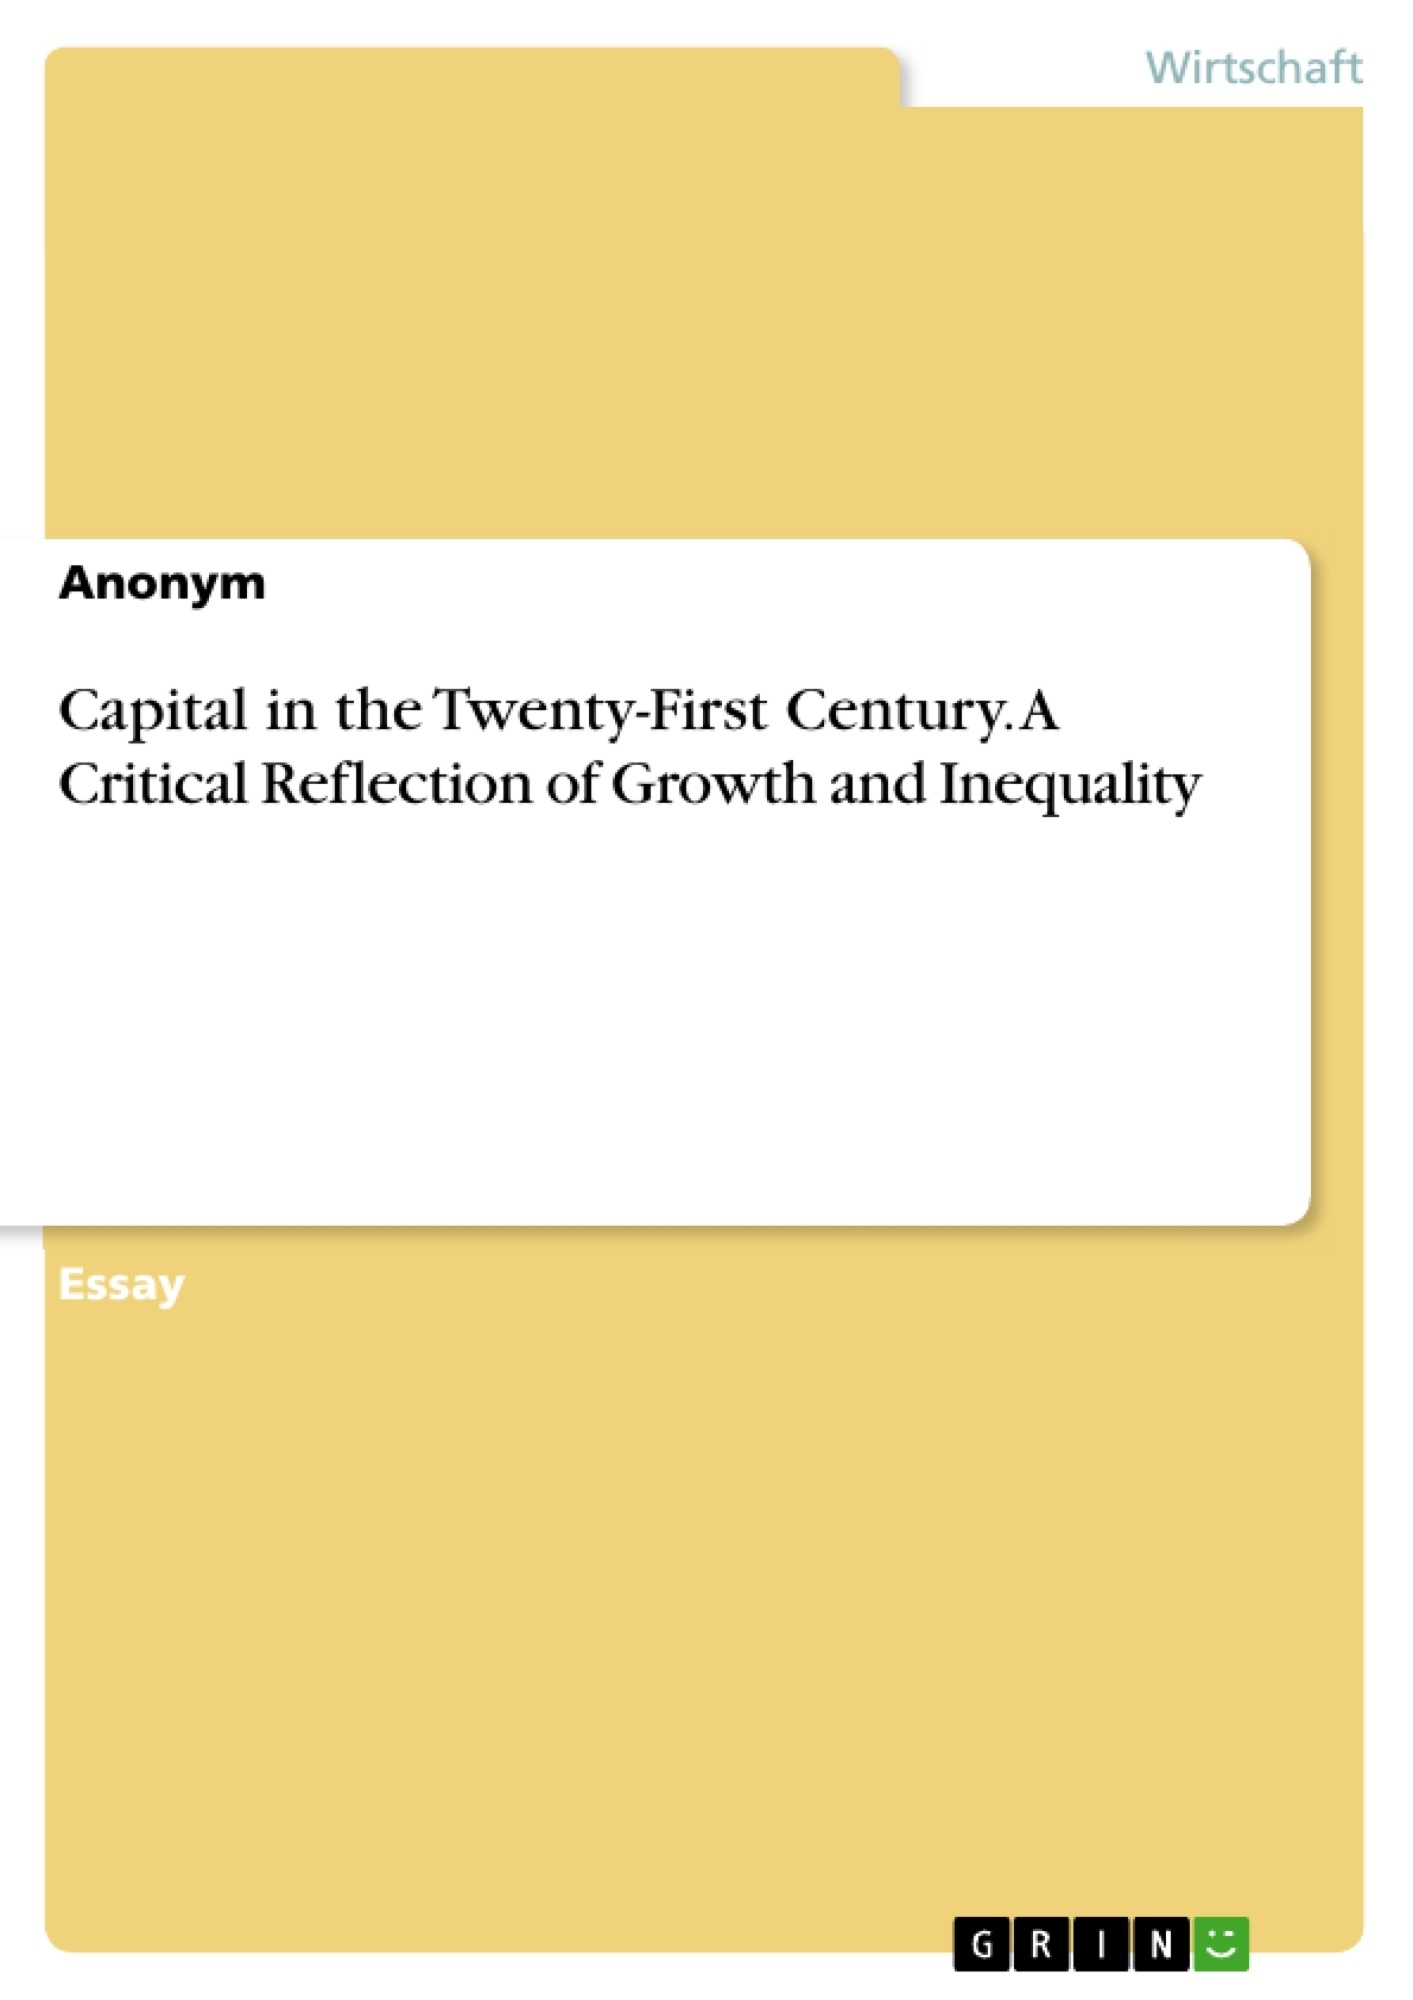 Titel: Capital in the Twenty-First Century. A Critical Reflection of Growth and Inequality